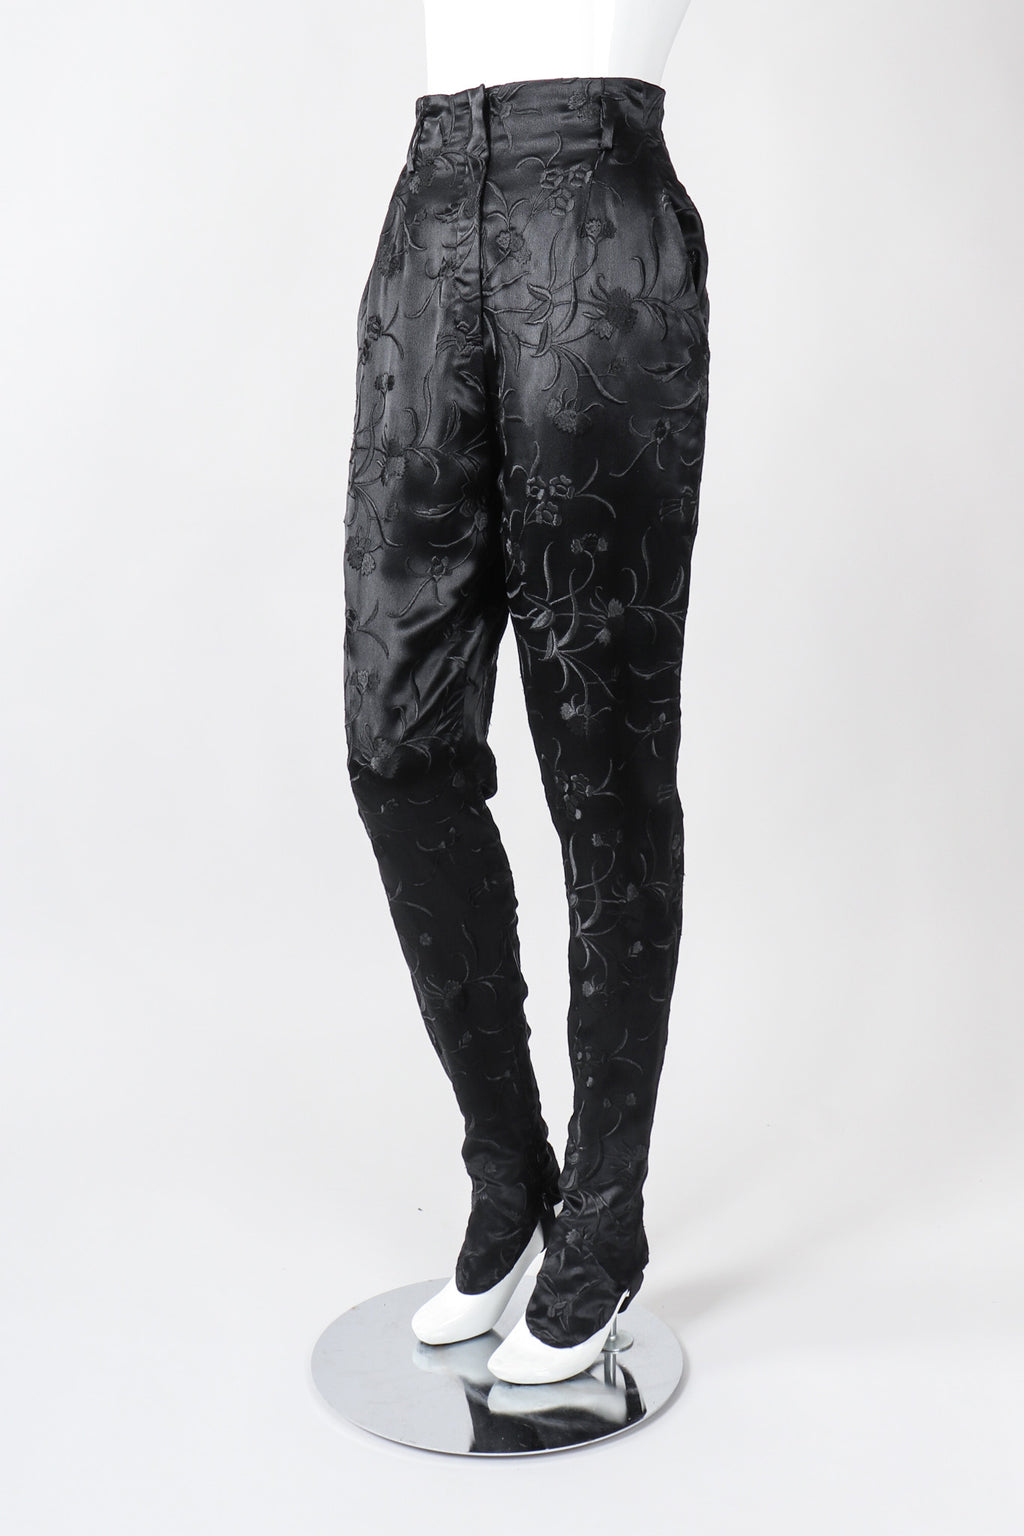 Recess Los Angeles Vintage Embroidered Silk Stirrup Spat Tuxedo Pant